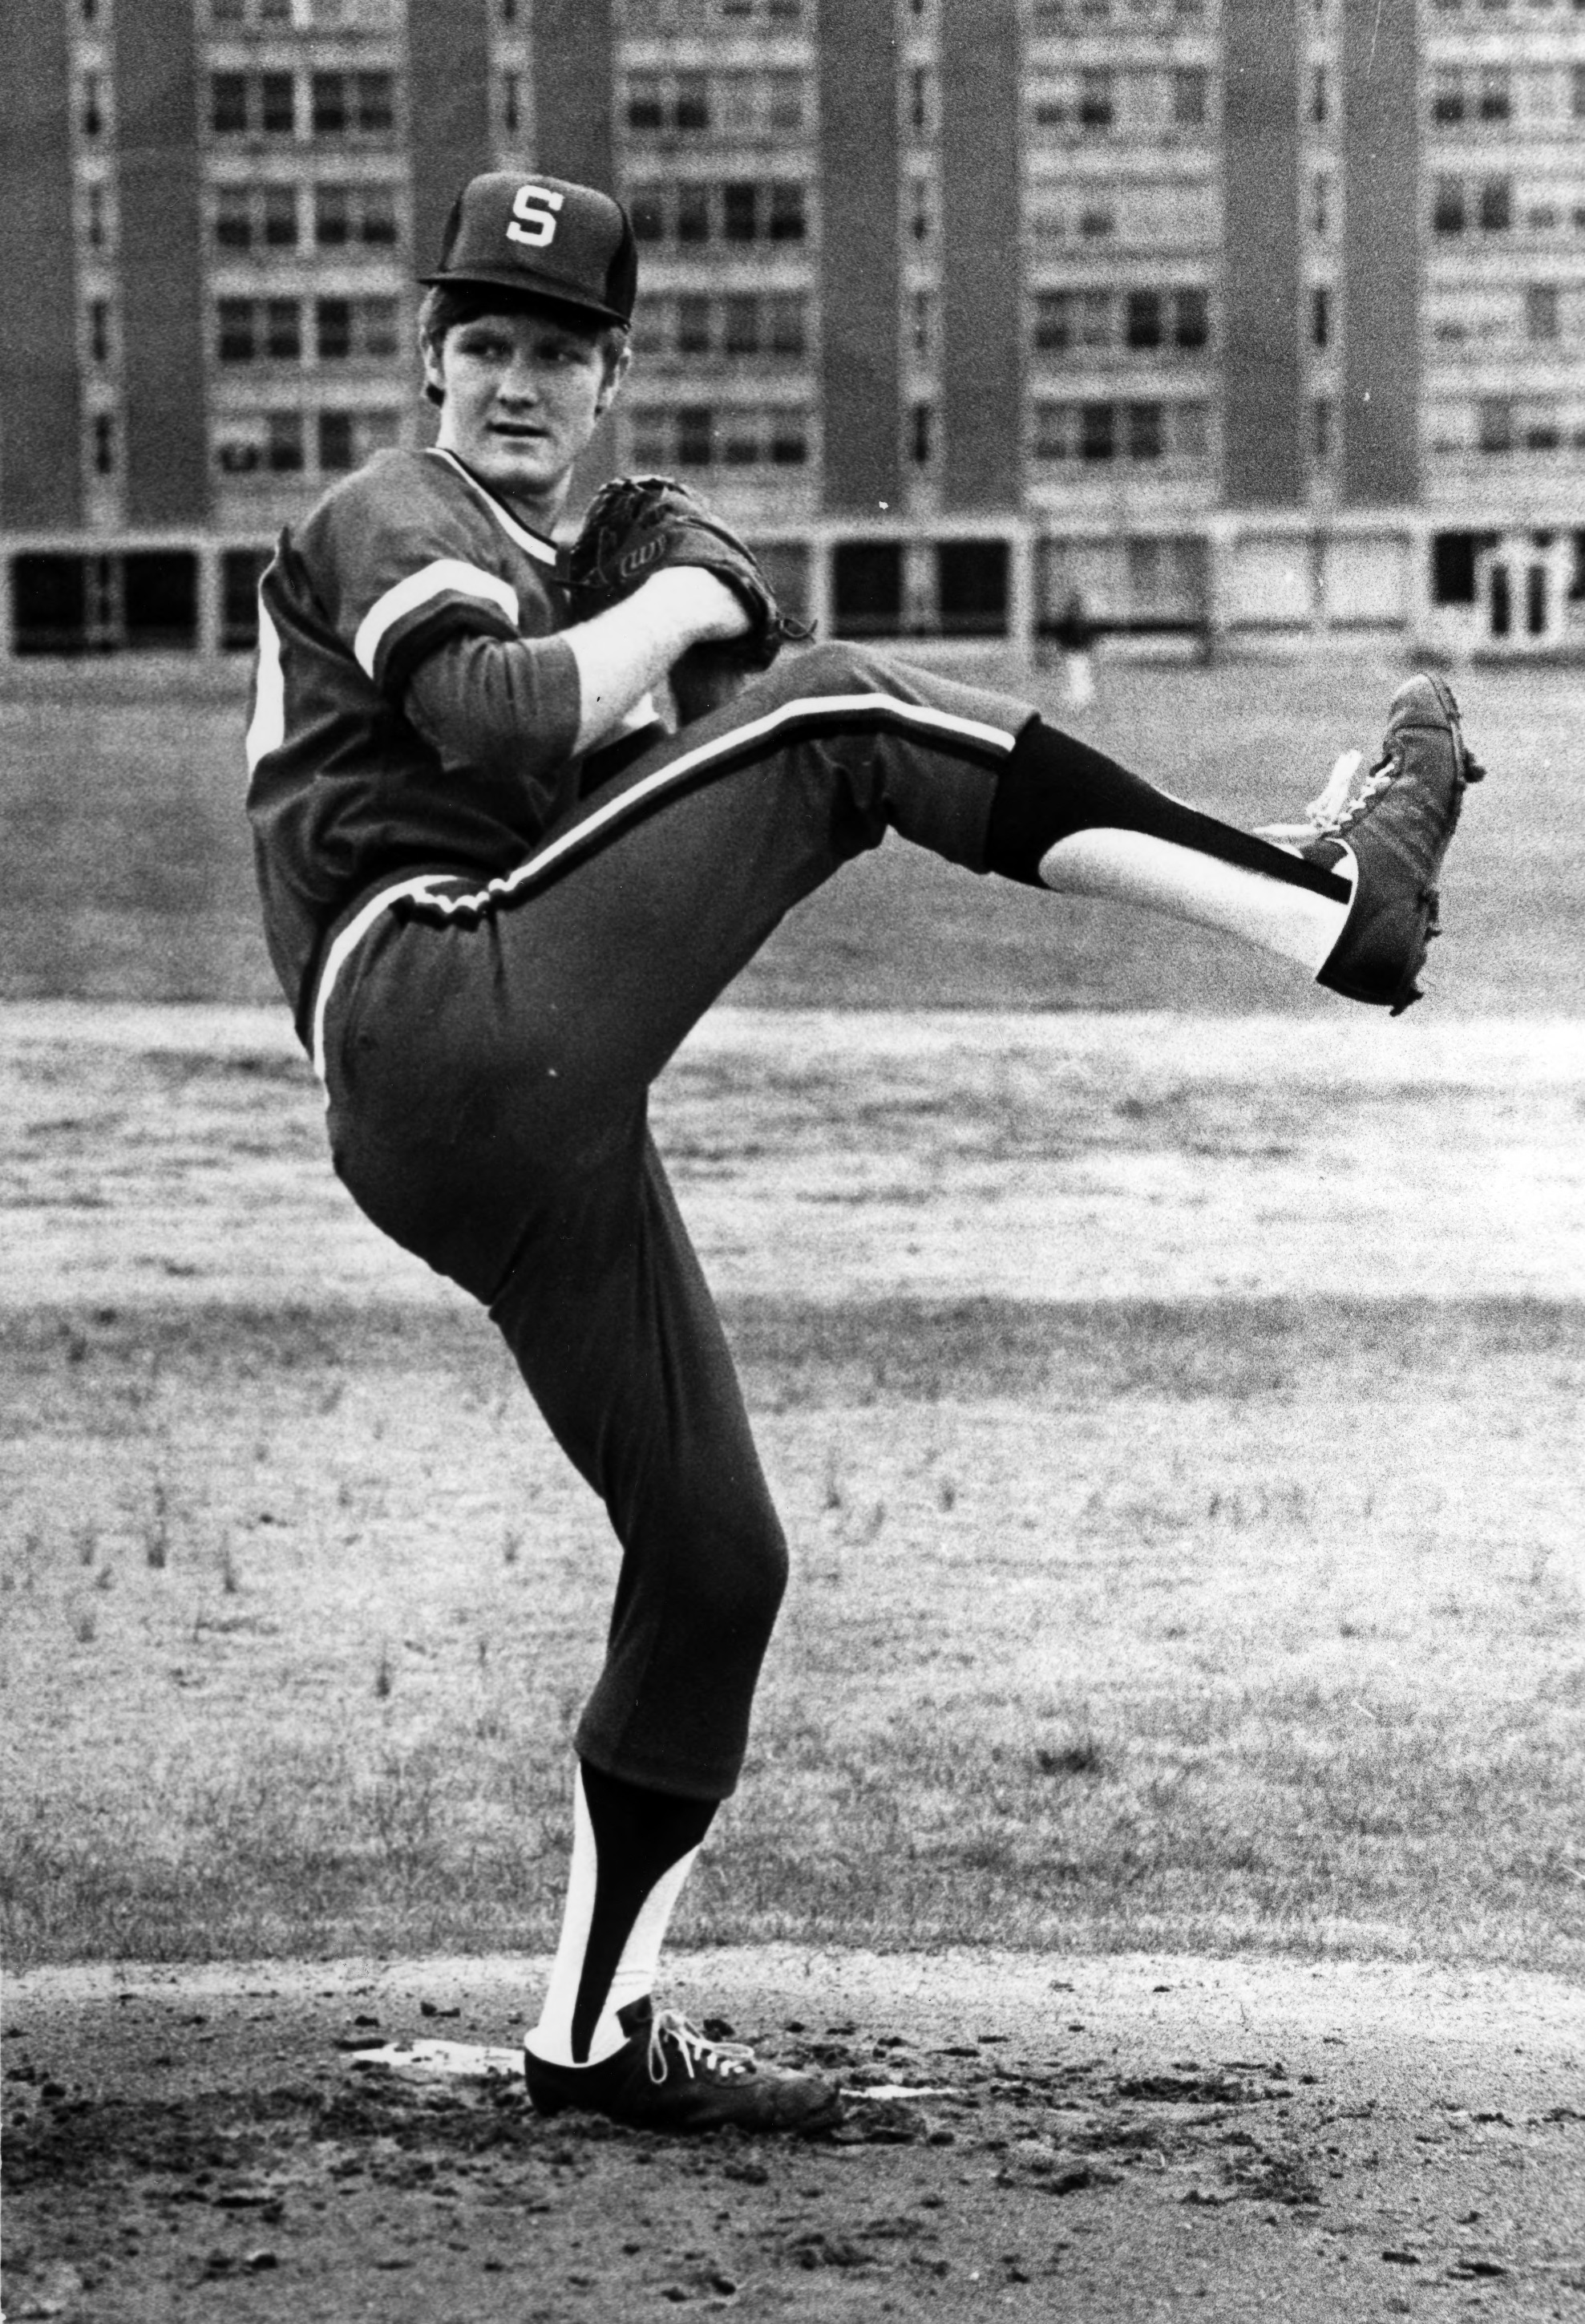 Pete Lupien, pitcher for North Carolina State, 1974